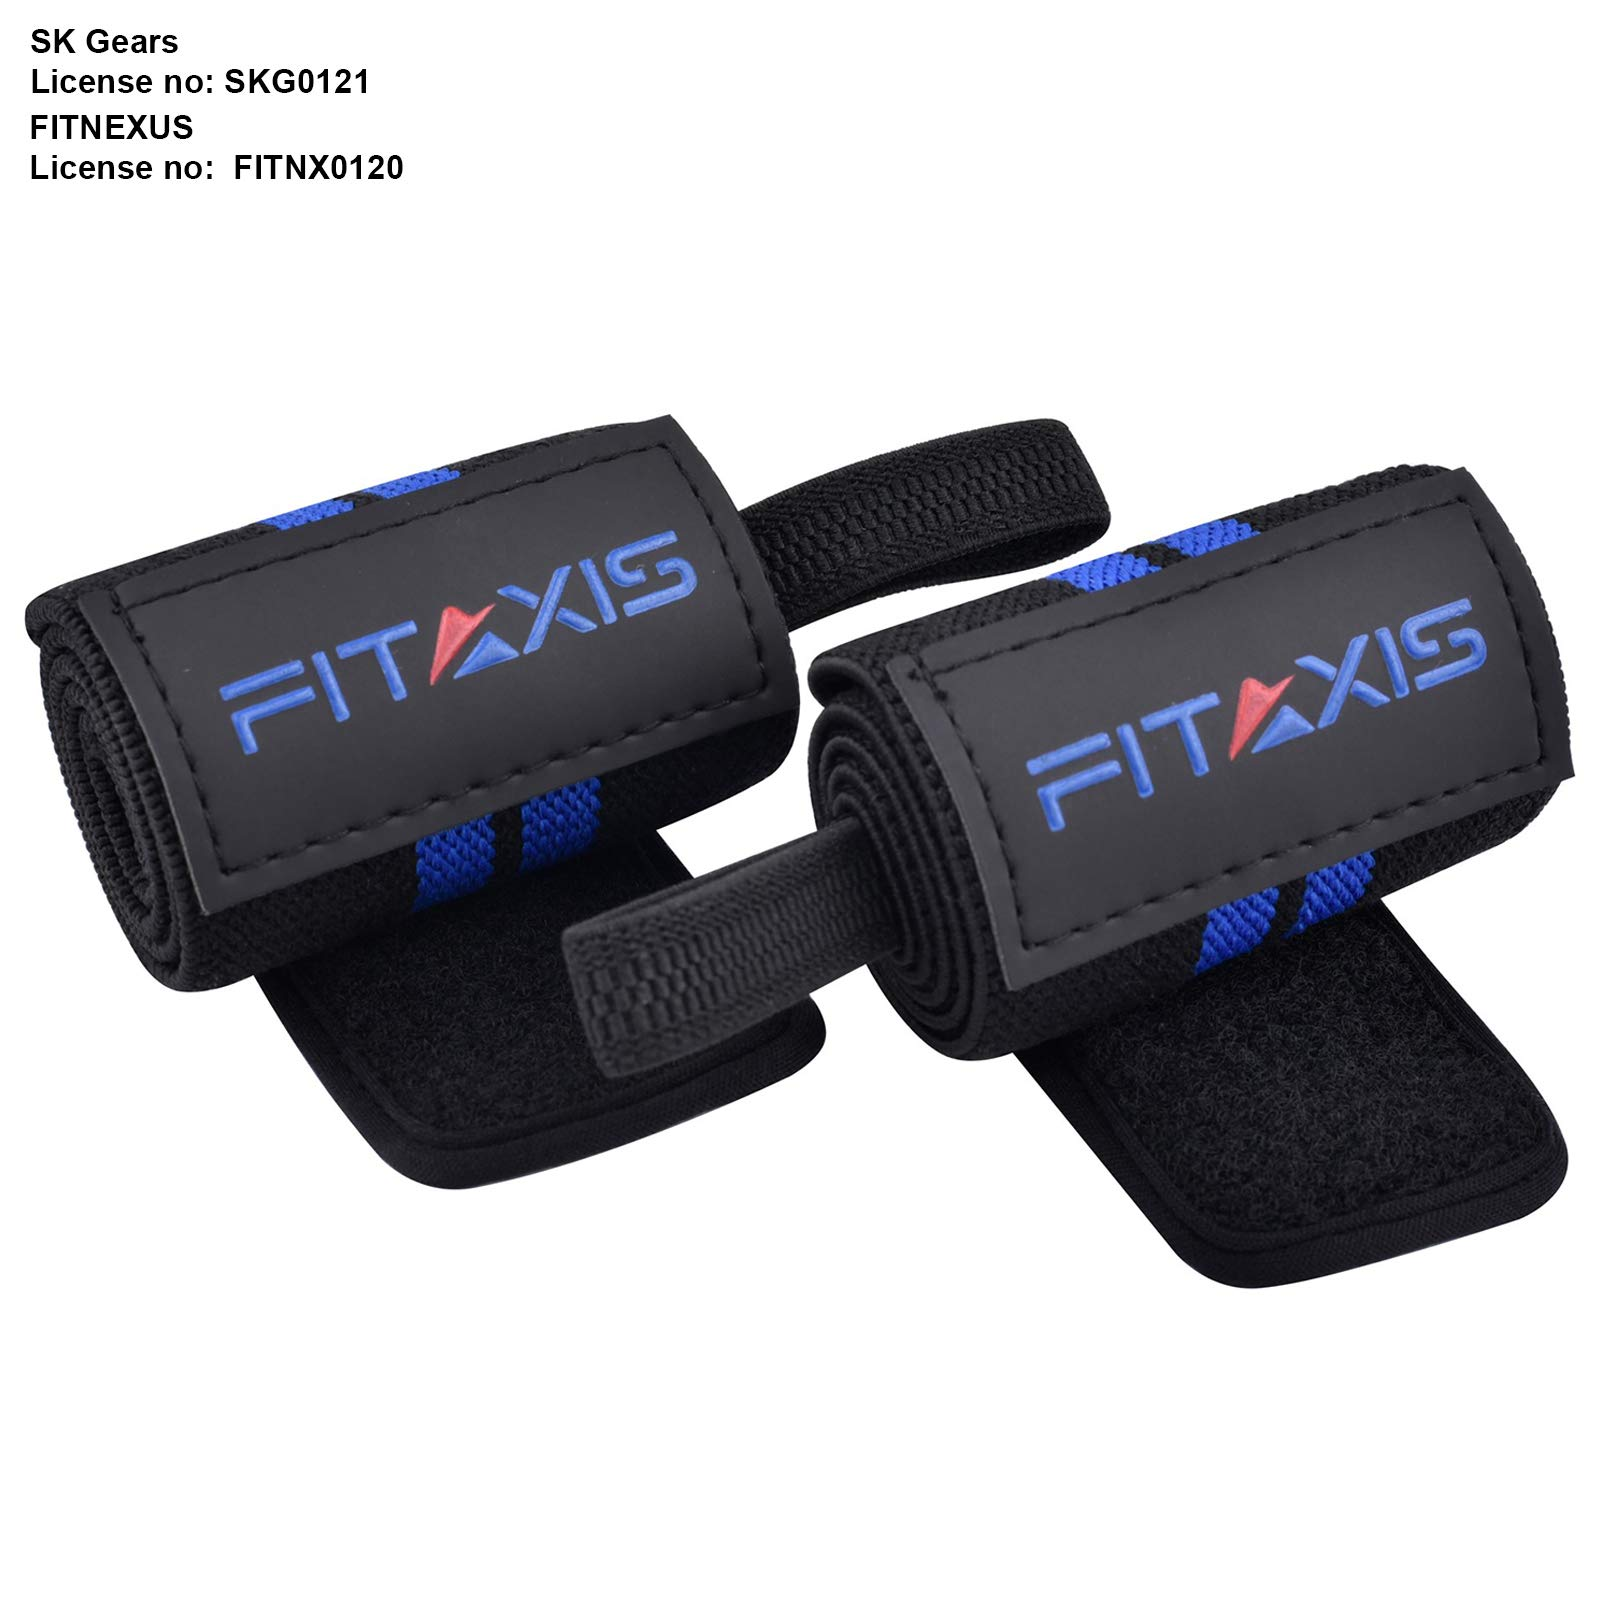 FITAXIS Wrist Wraps, Weight Lifting Hand Grip Gym Straps| Premium Cotton Pair - 1 Size Fits to All - 18